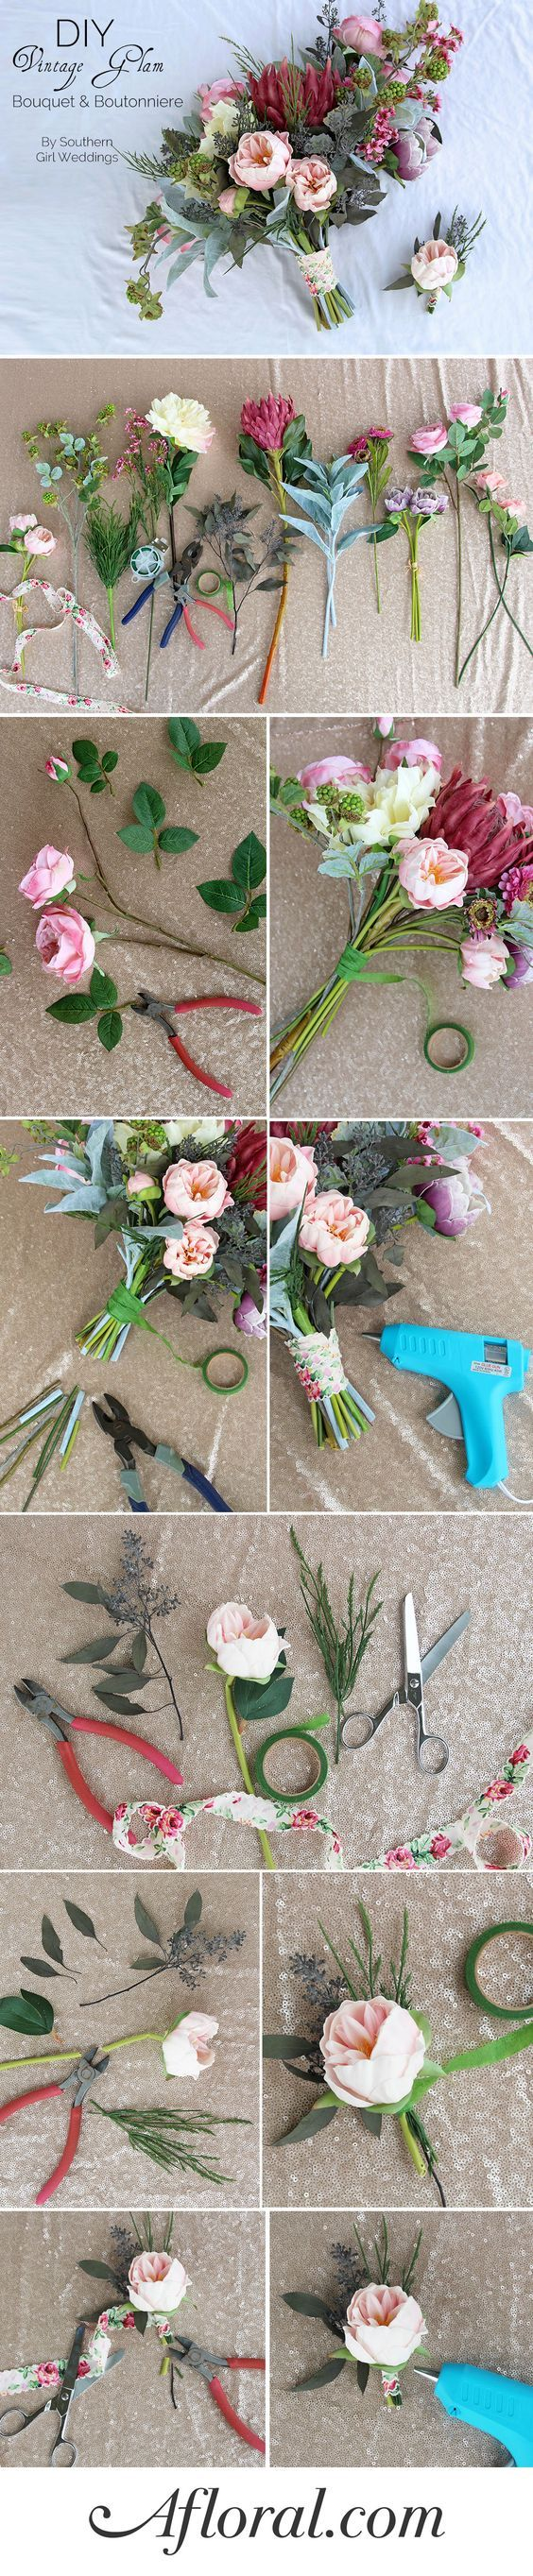 Learn how to make your own wedding bouquets and matching boutonnieres with this simple DIY from Southern Girl Weddings with flowers from afloral.com. #diywedding